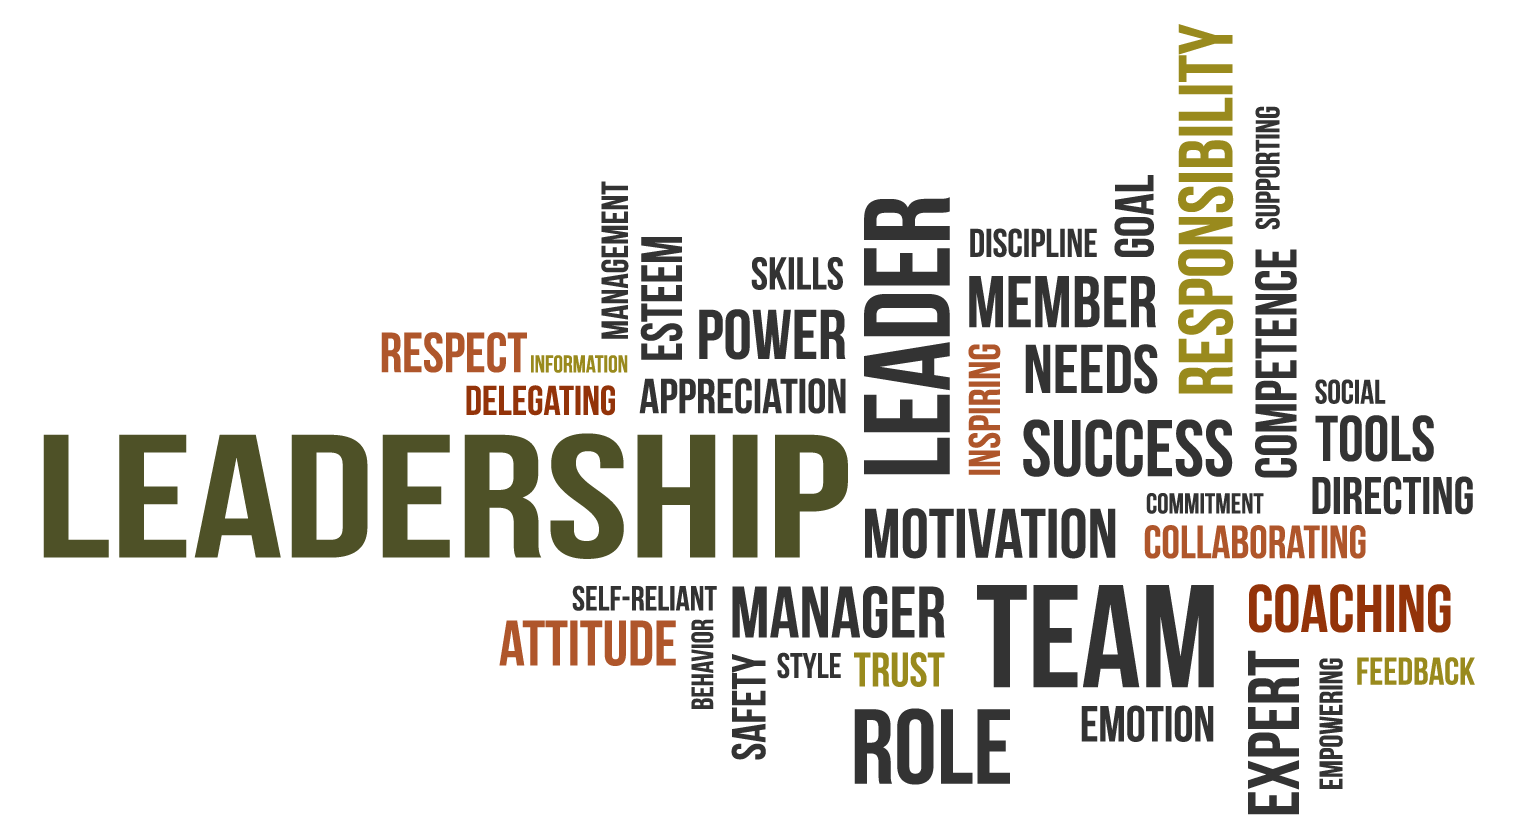 Leadership Traits (word cloud)